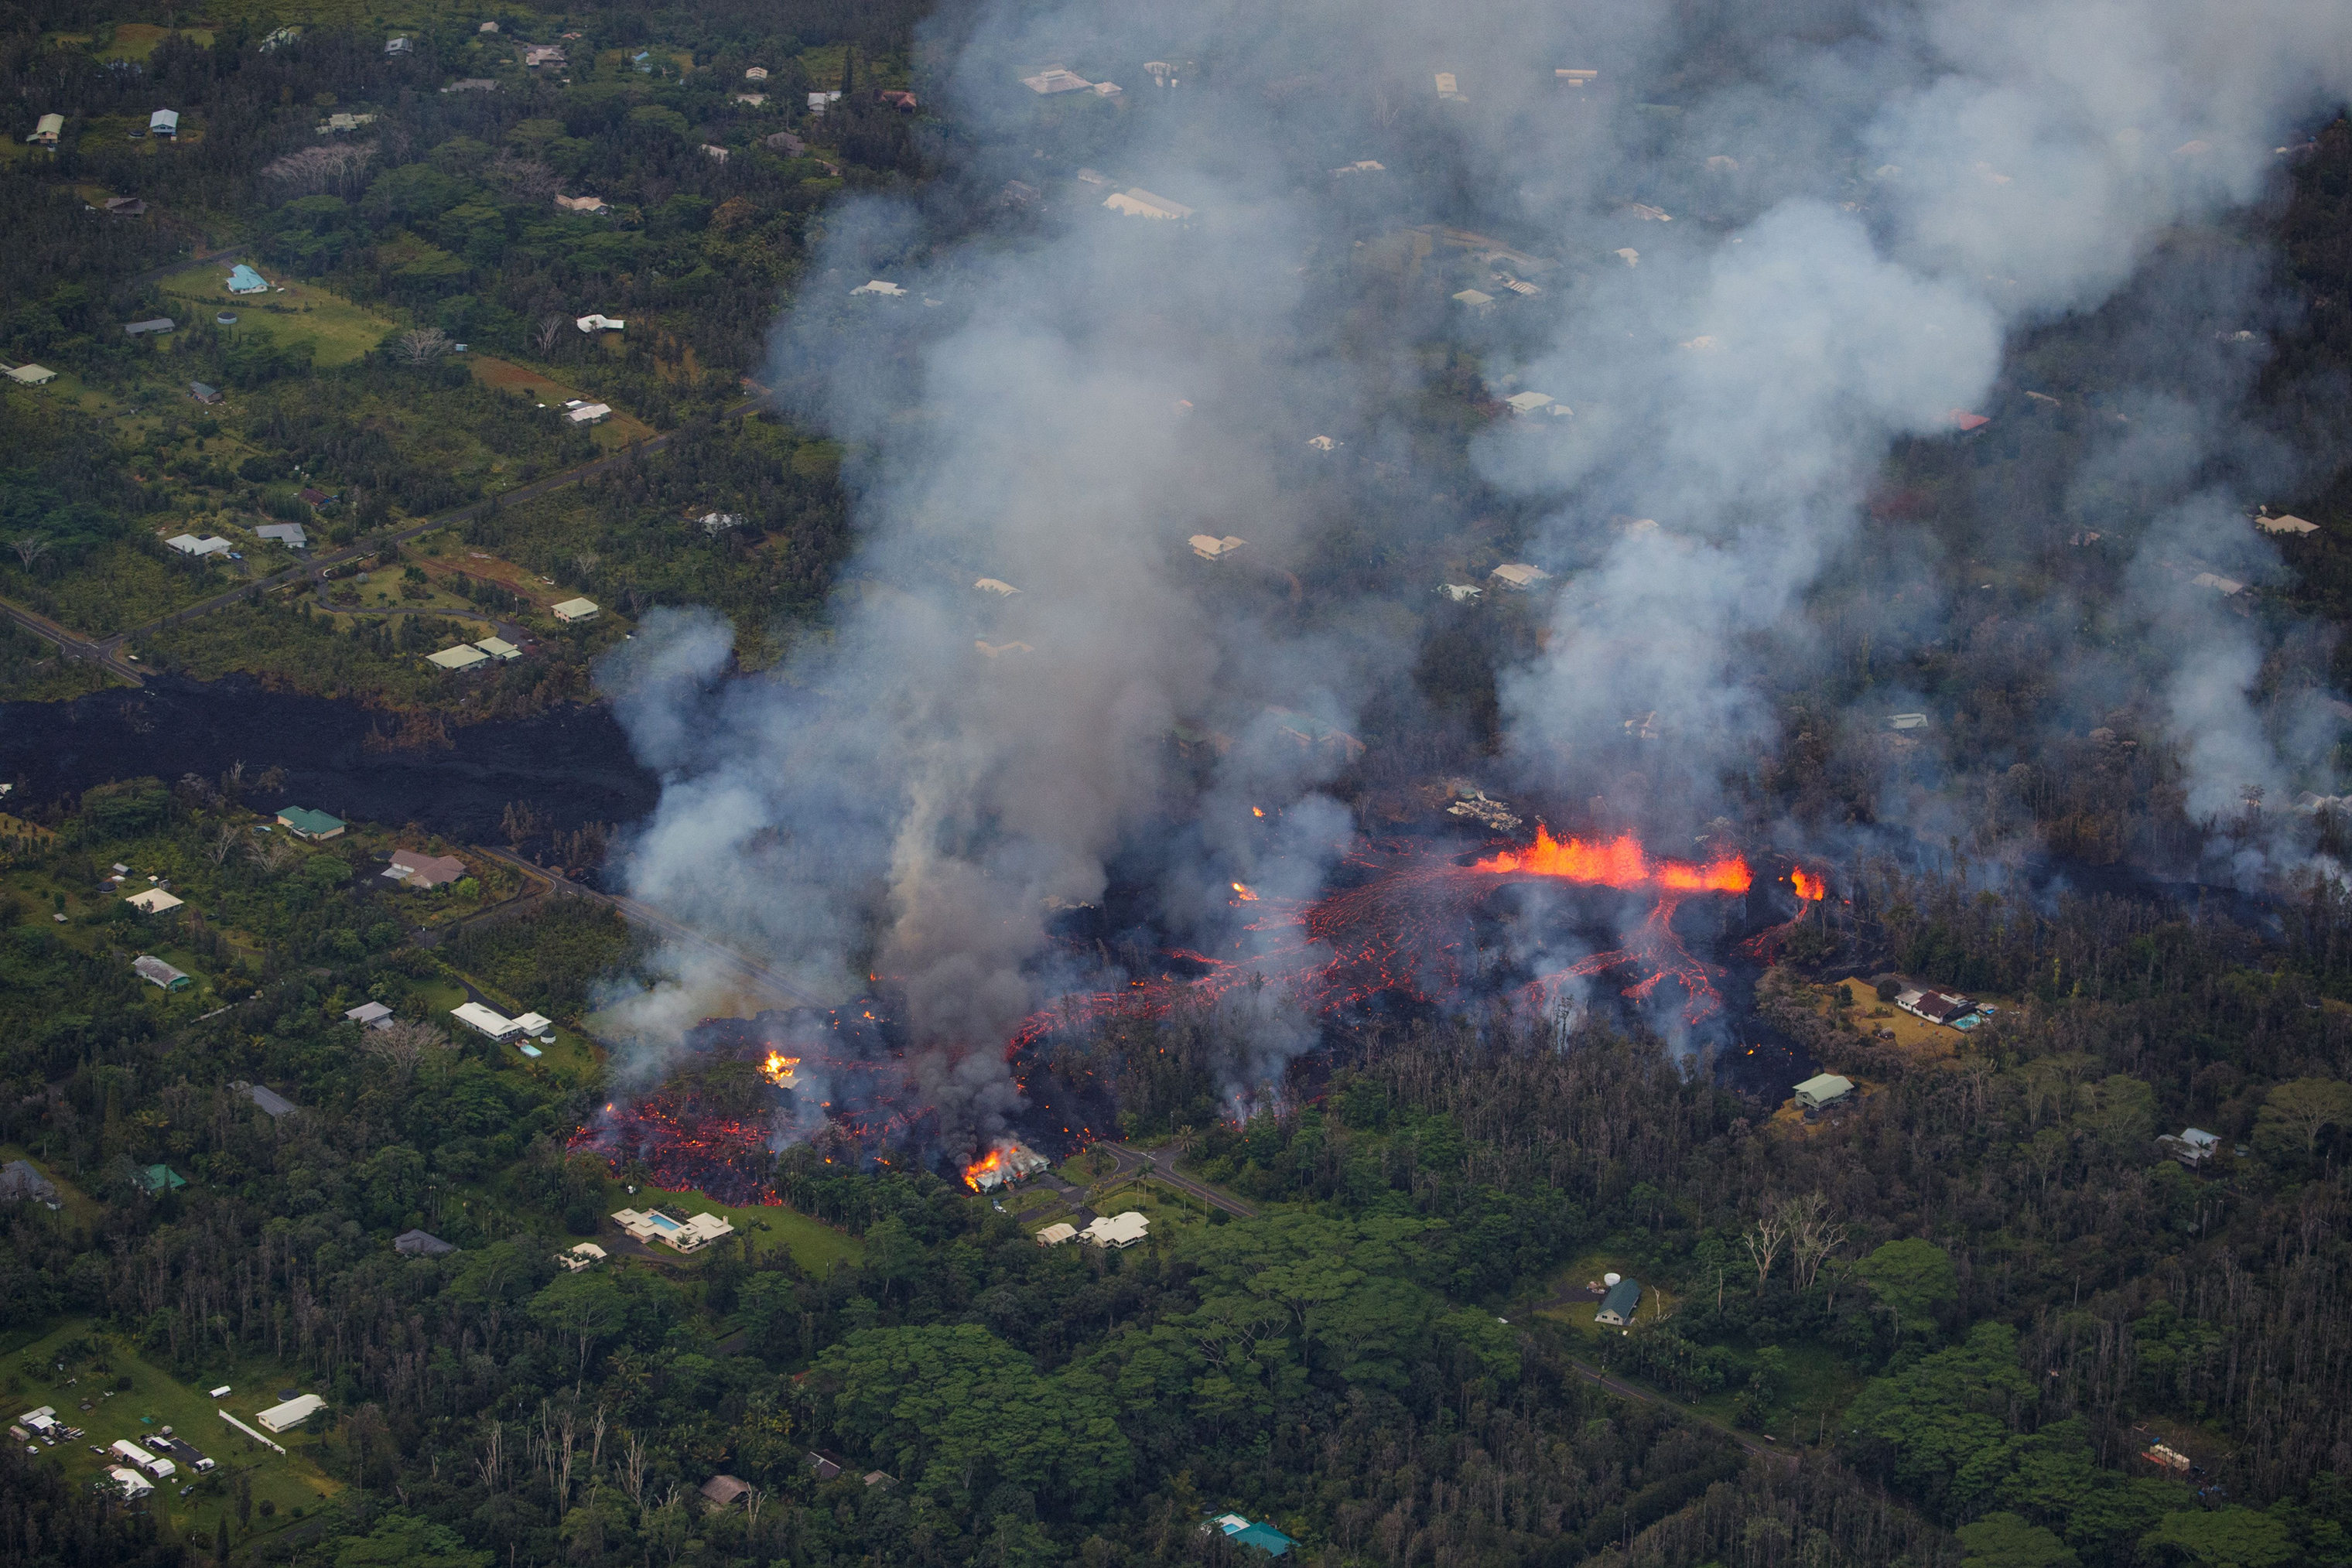 At least 26 homes were burned during the latest volcanic activity.